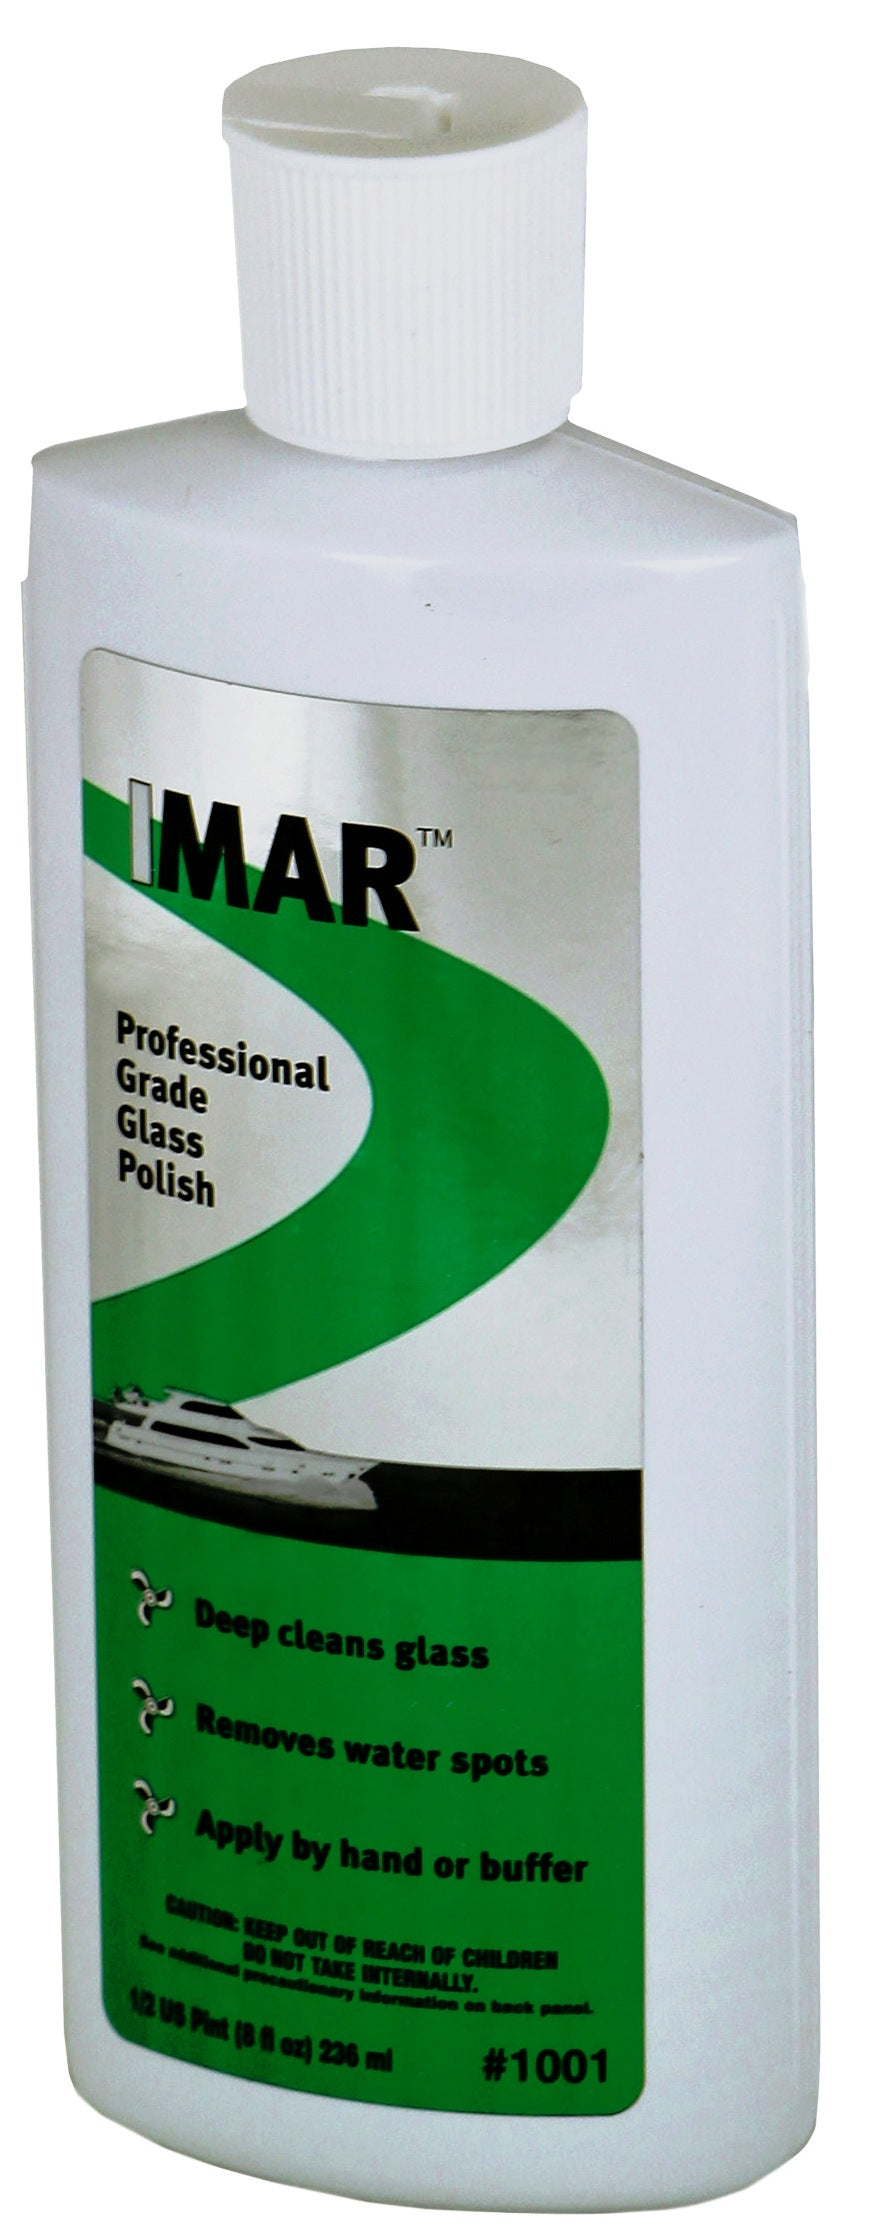 IMAR Professional Grade Glass Polish - 8 Oz Spray Bottle